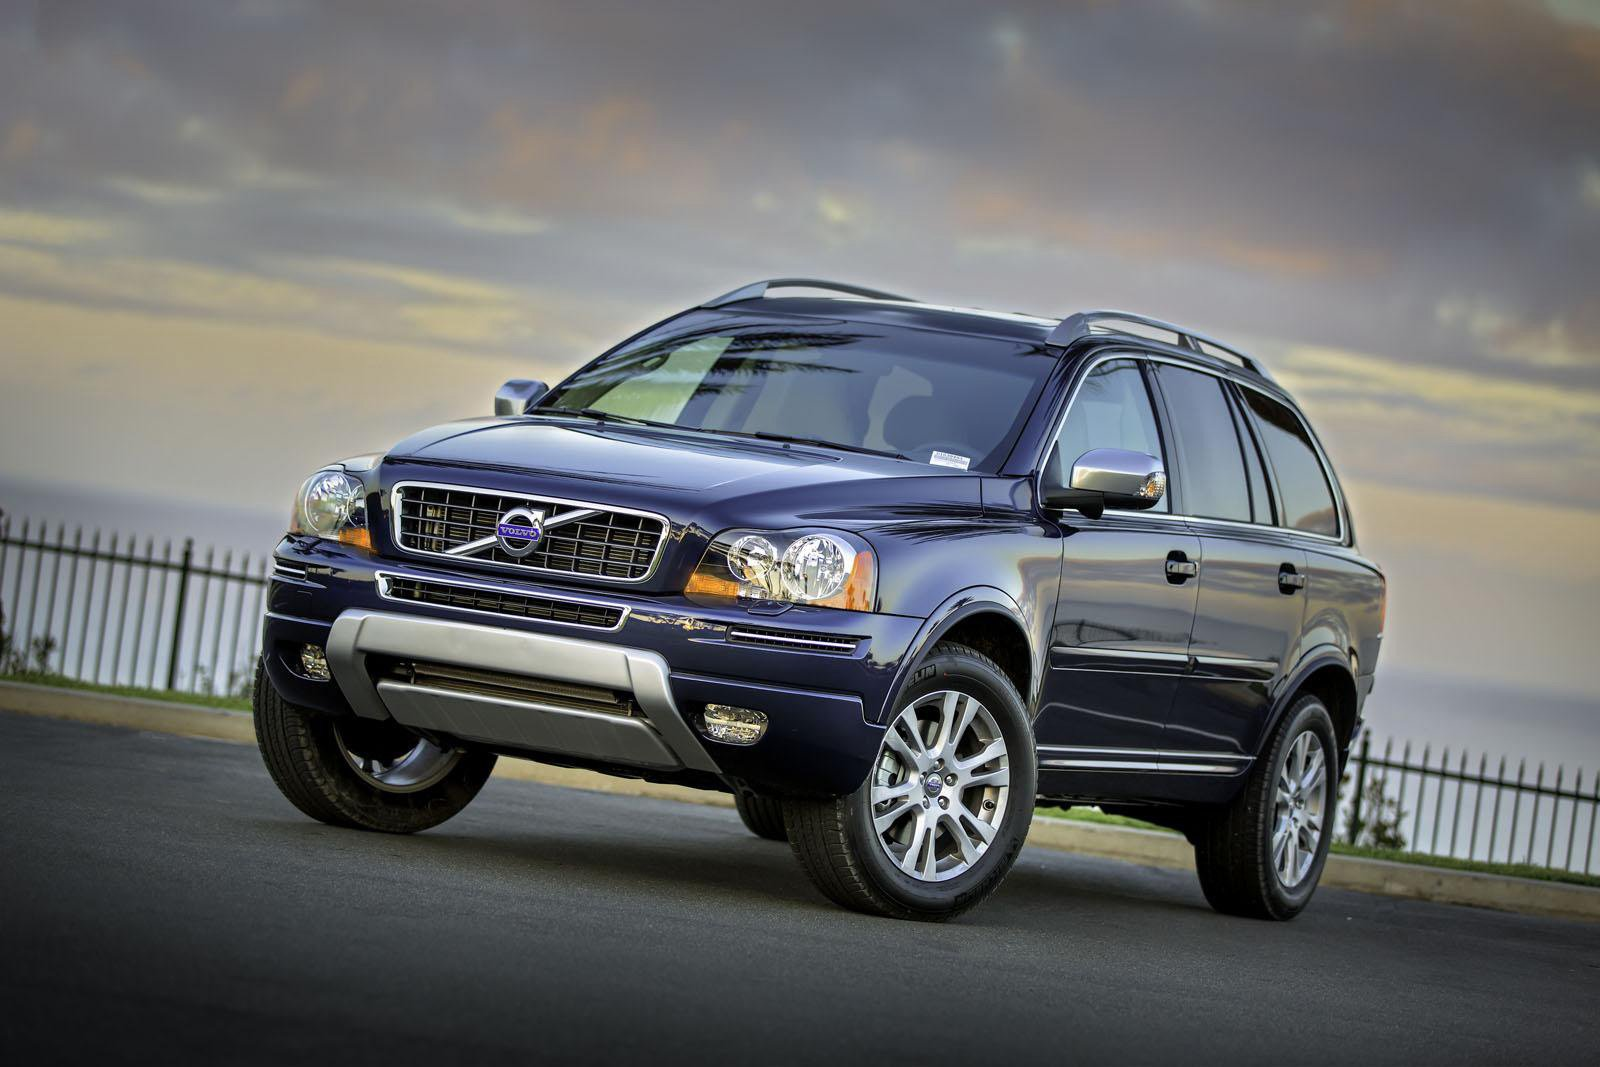 Latest Best Car Models All About Cars 2013 Volvo Xc90 Free Download